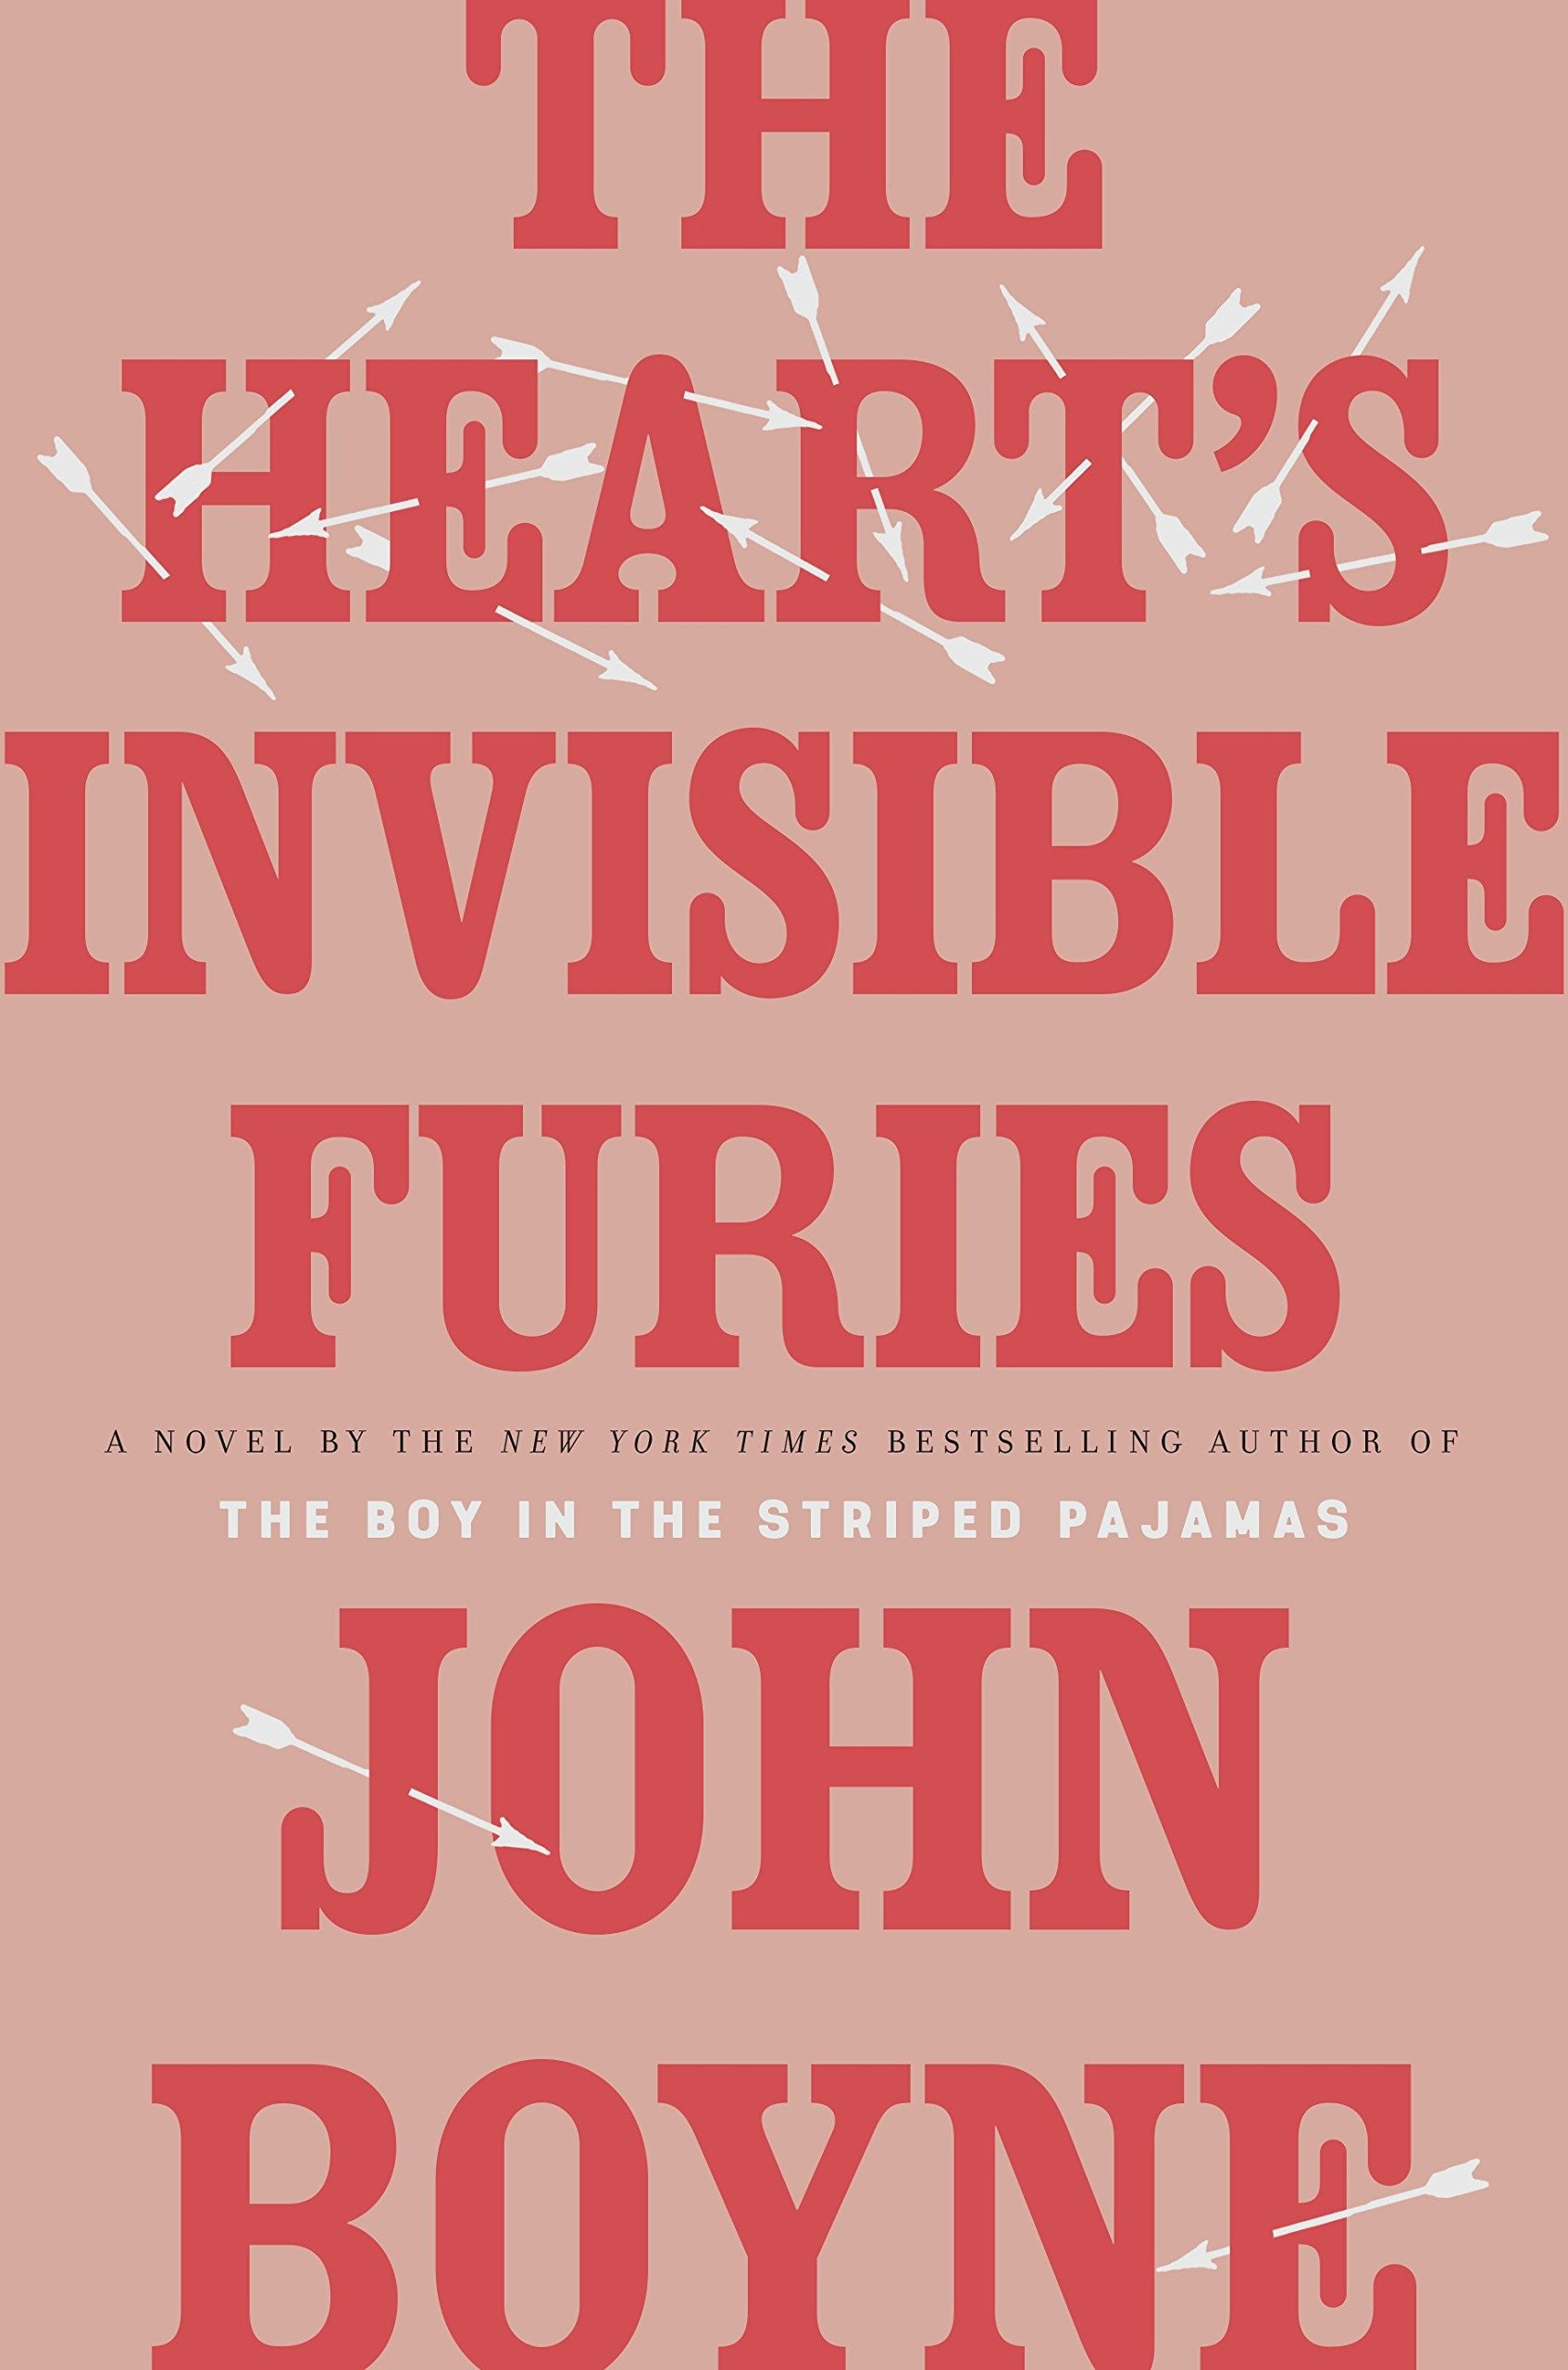 Image result for heart invisible furies